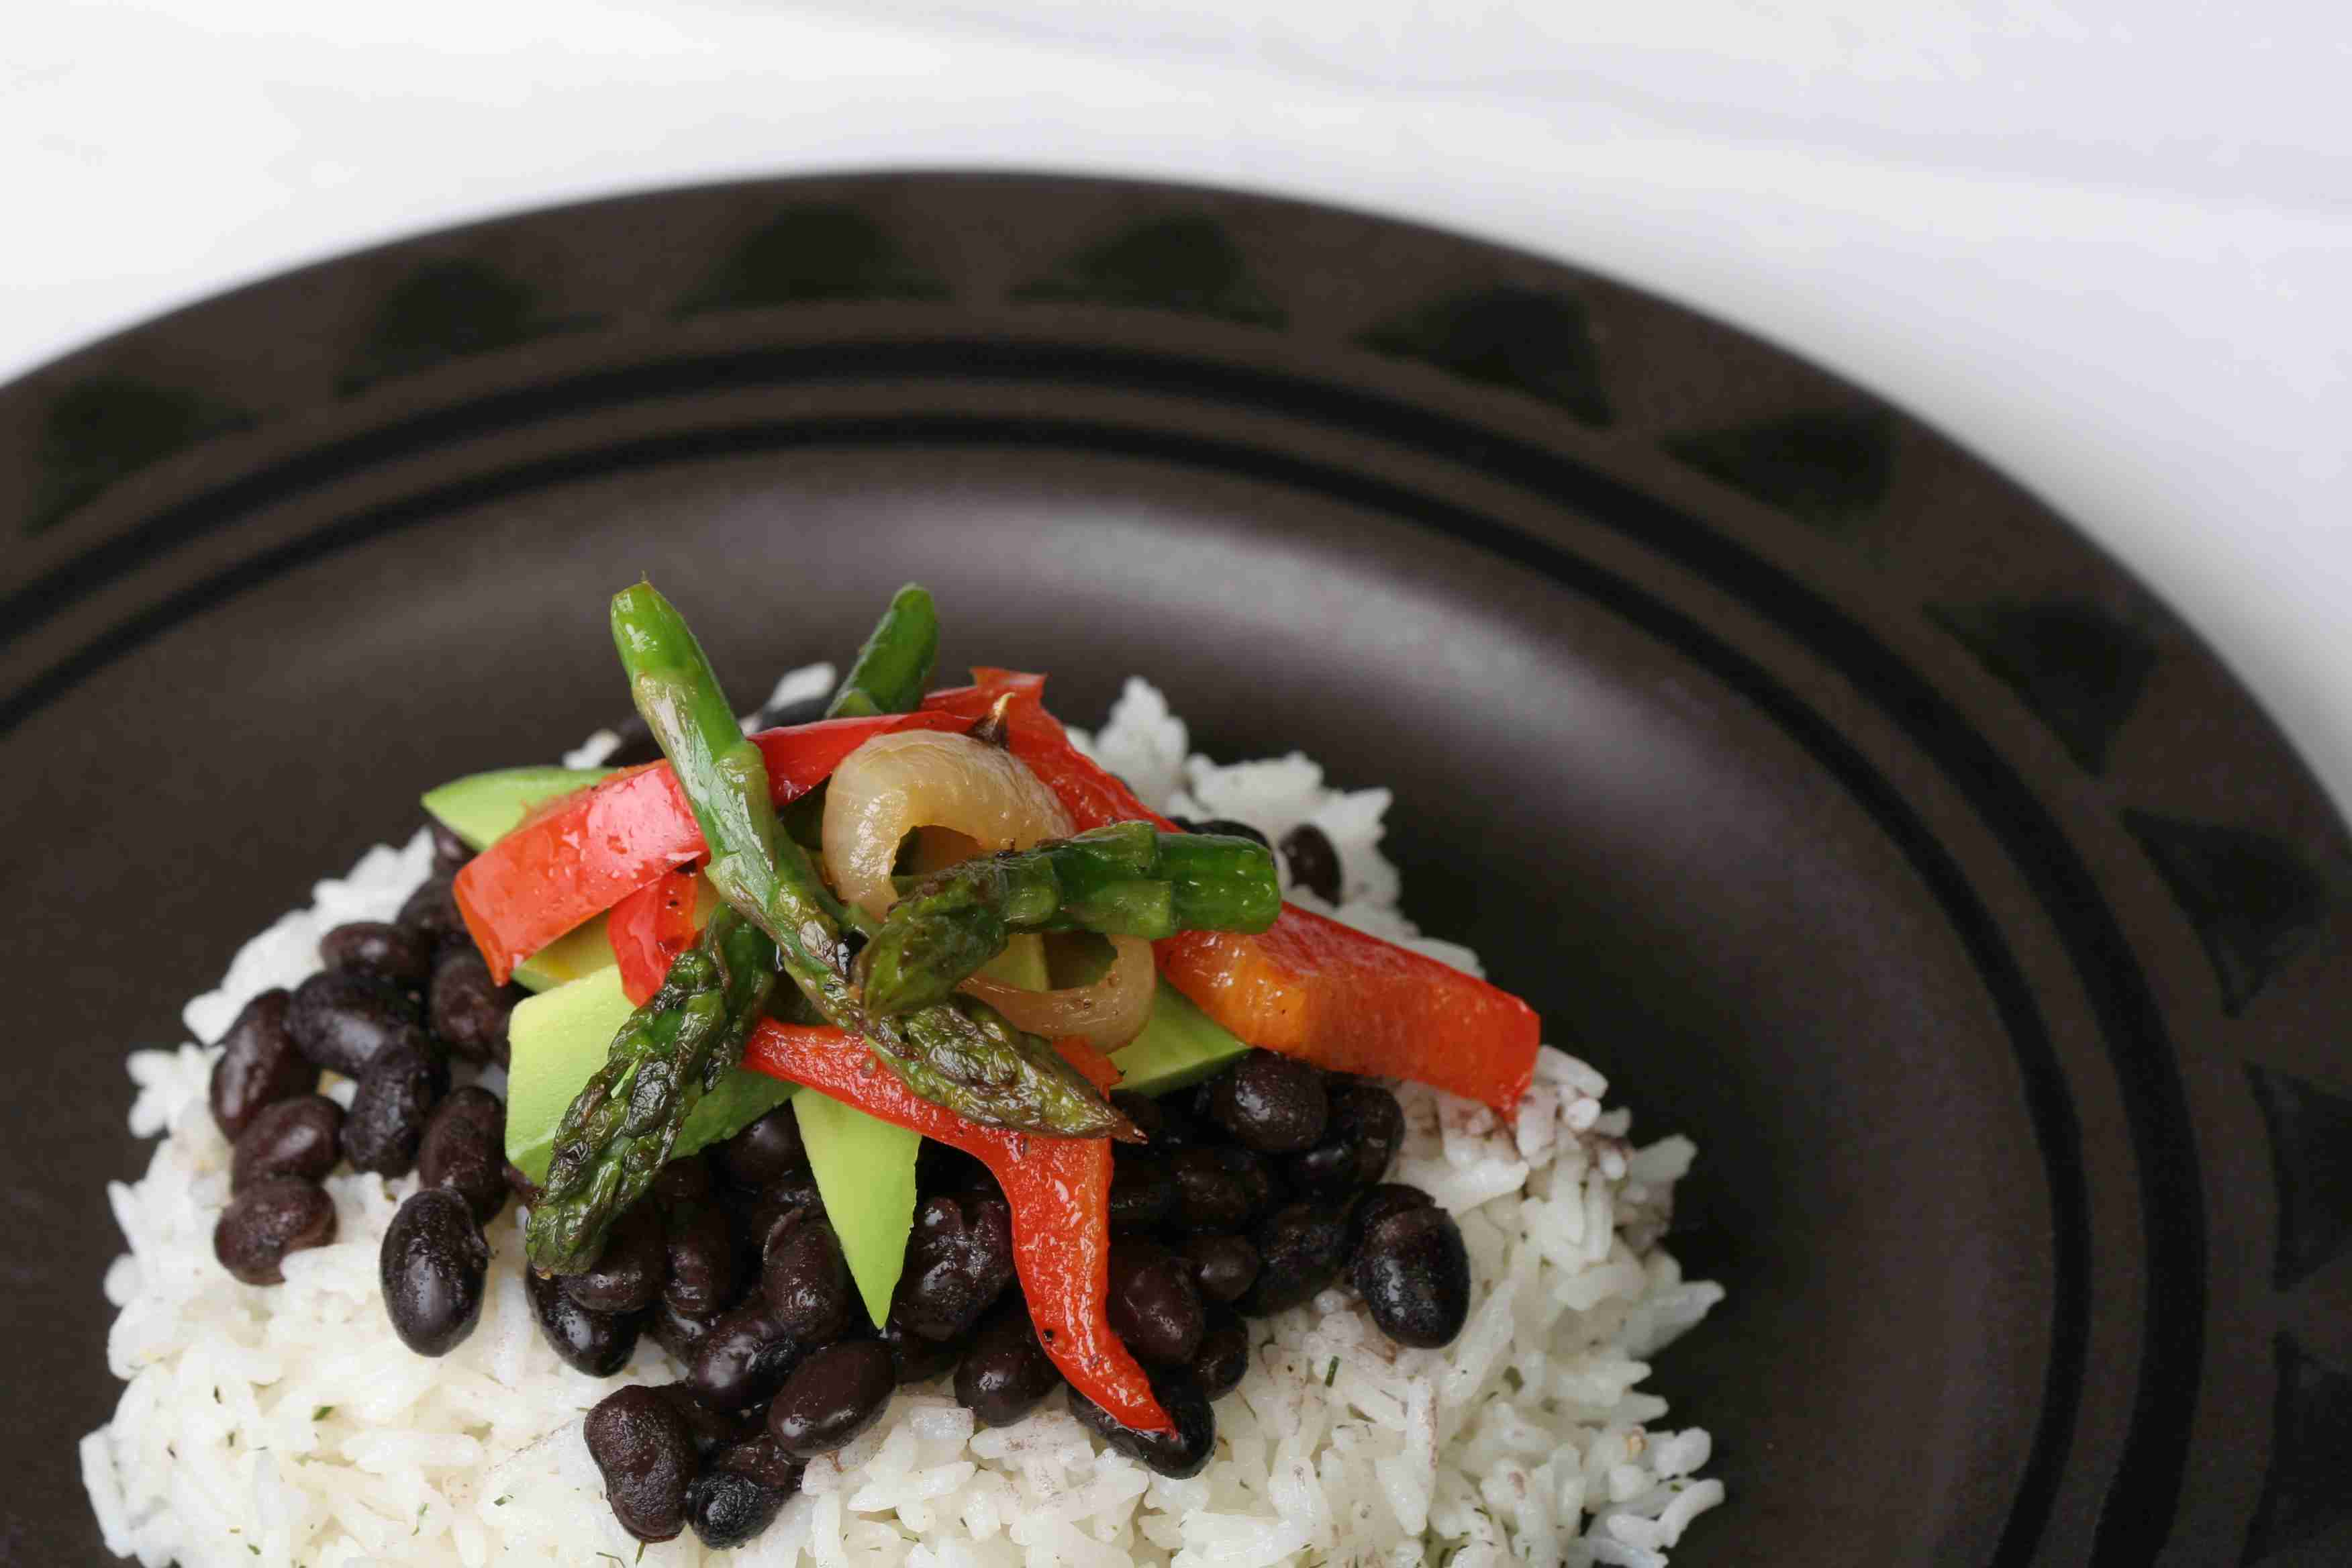 Black beans and rice with veggies